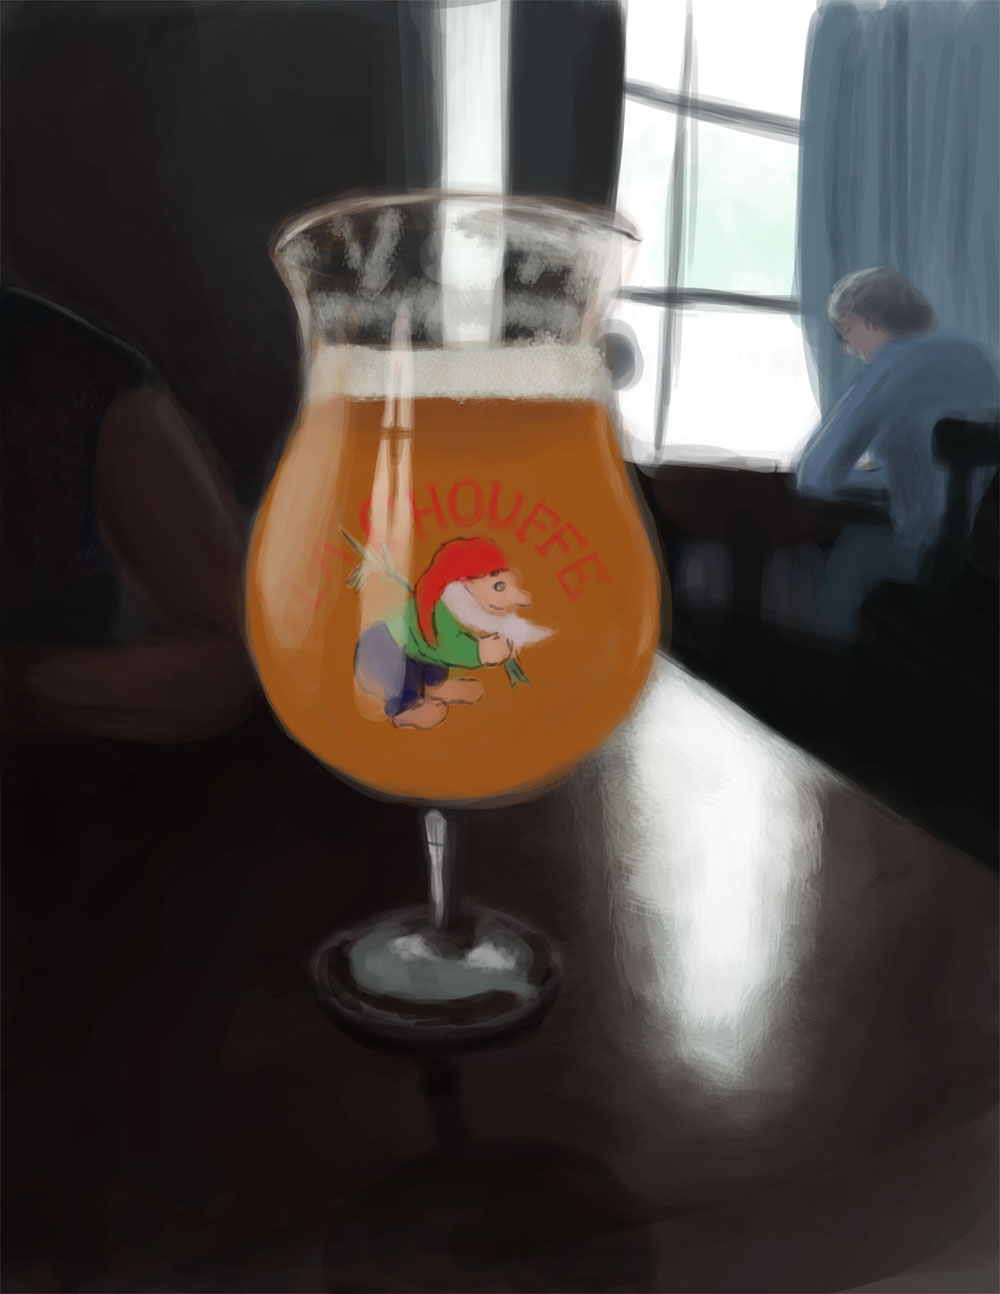 Digital Painting of a La Chouffe